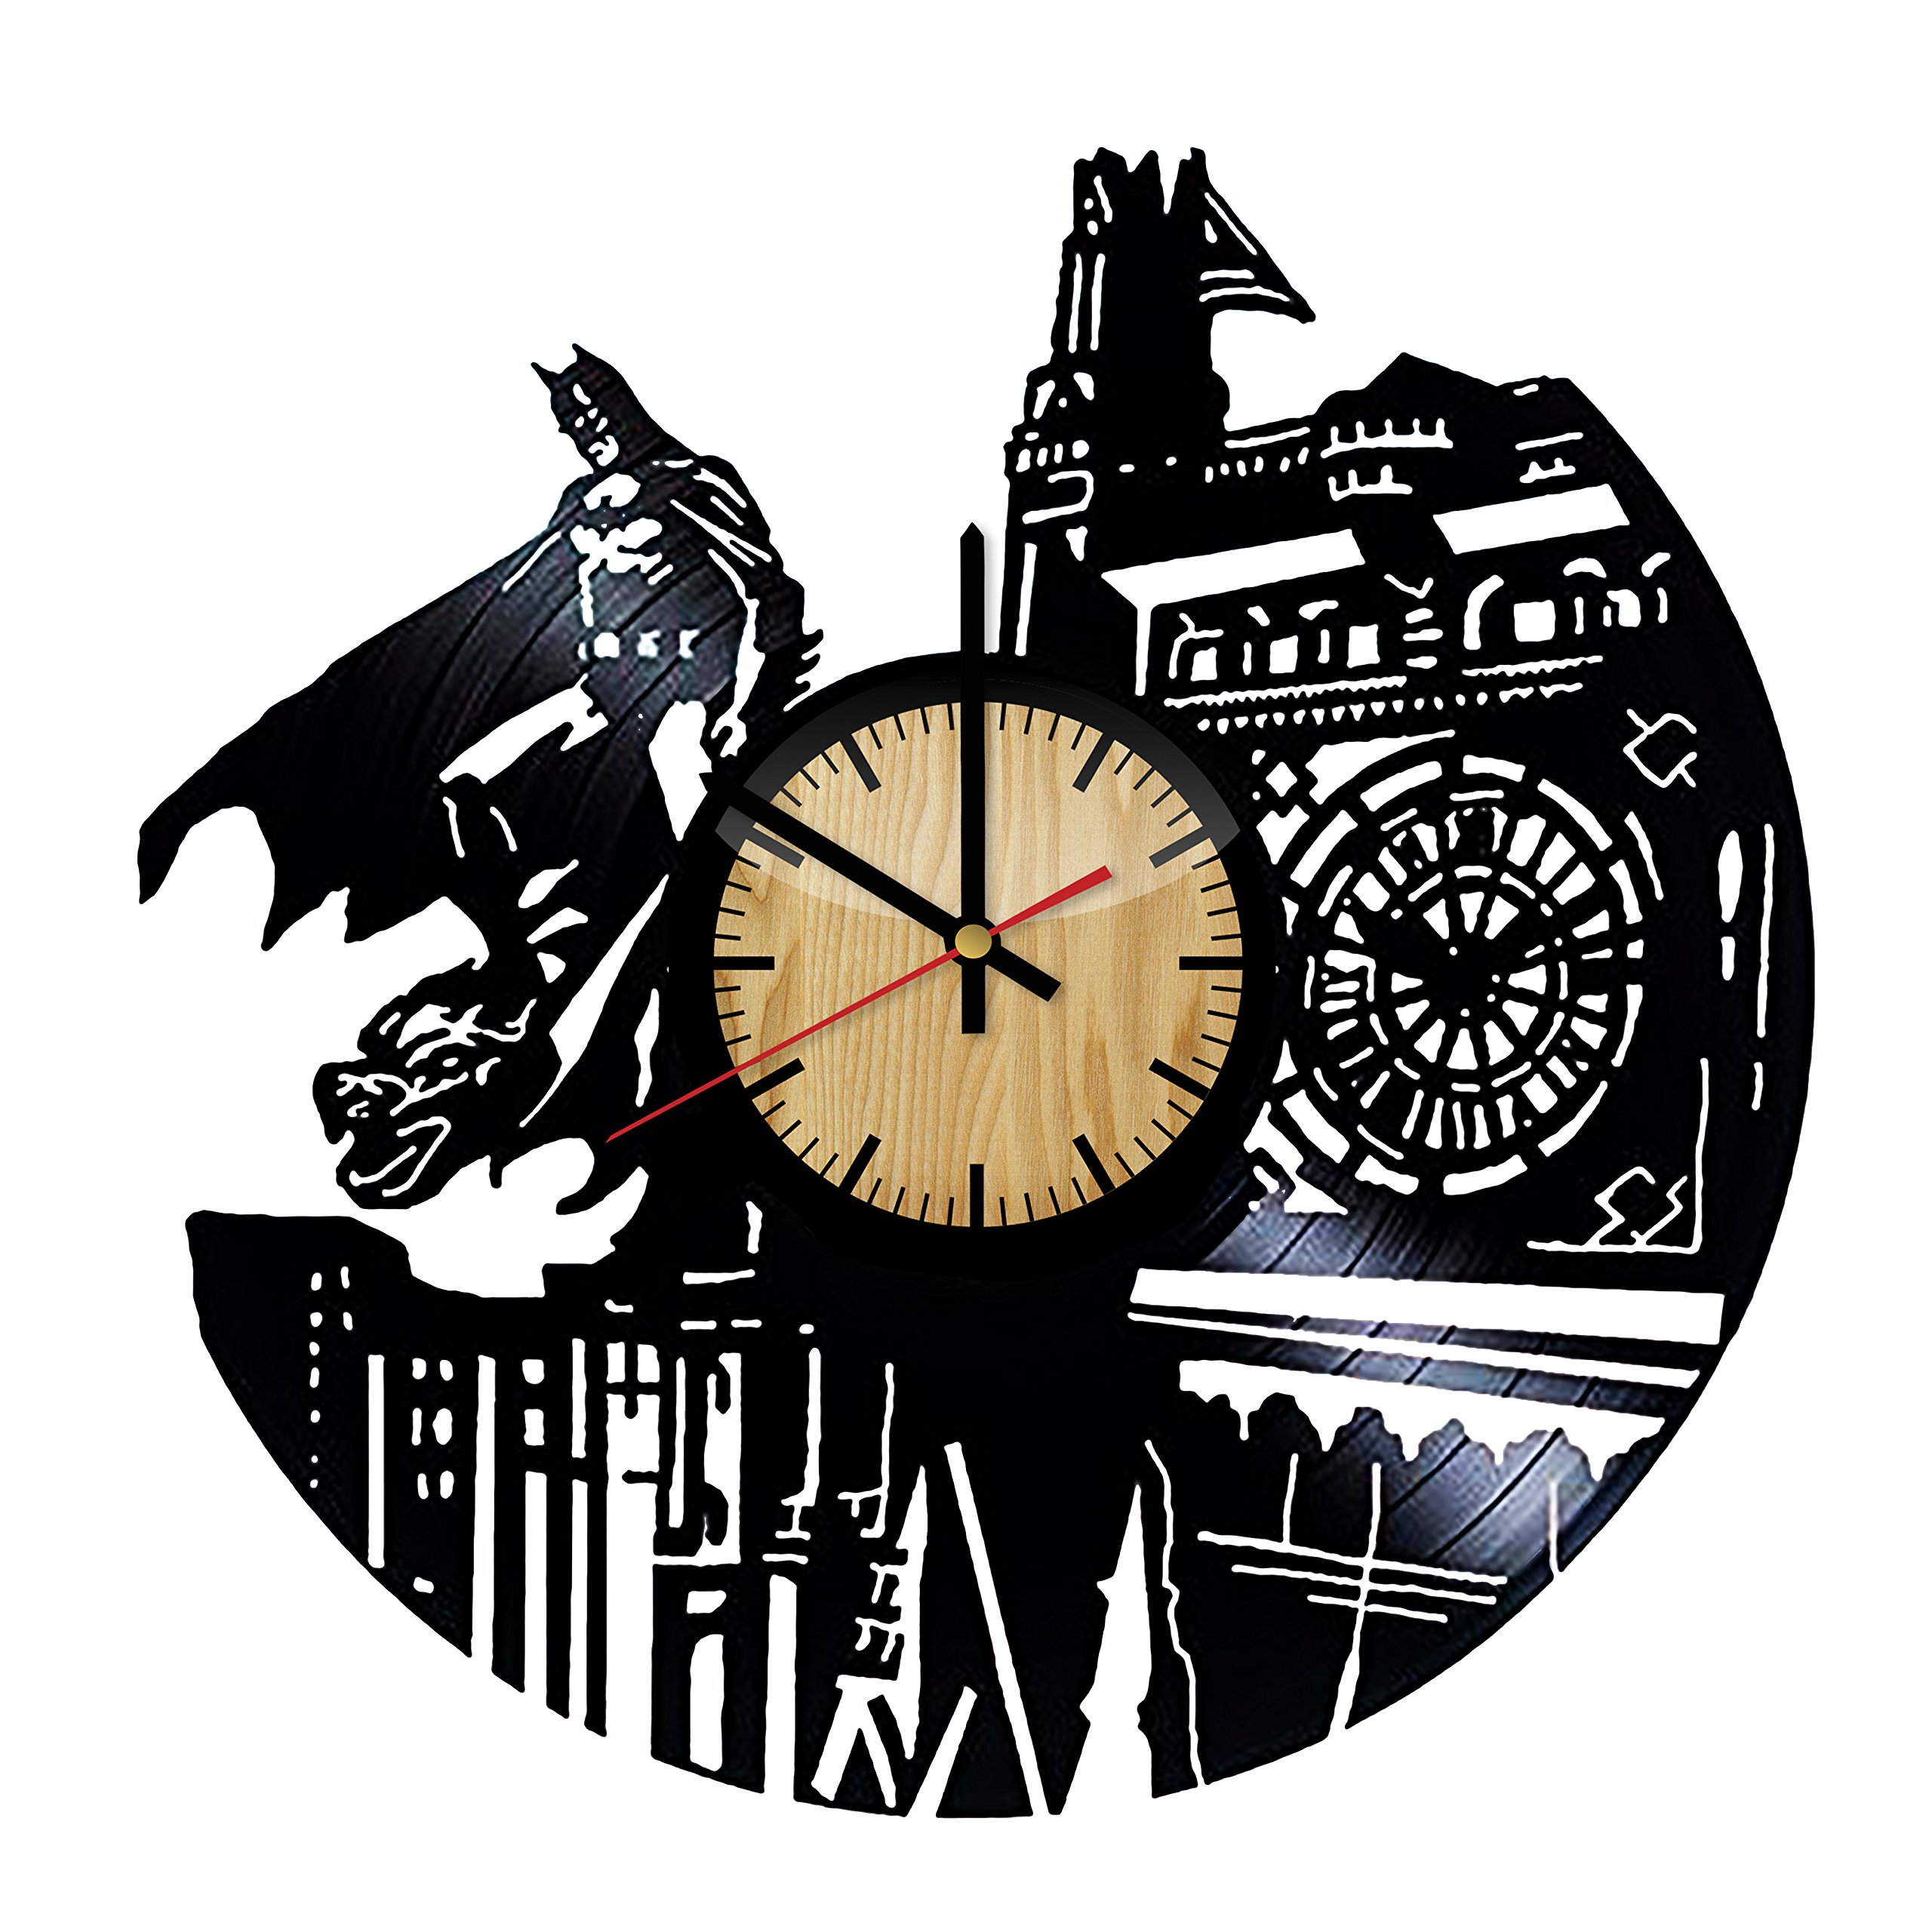 Batman Dark Knight Hero Arkham City DC Comics Movie Characters Vinyl Record Design Wall Clock - Decorate your home with Modern Famous Batman Dark Knight Story Art - Best gift for him or her